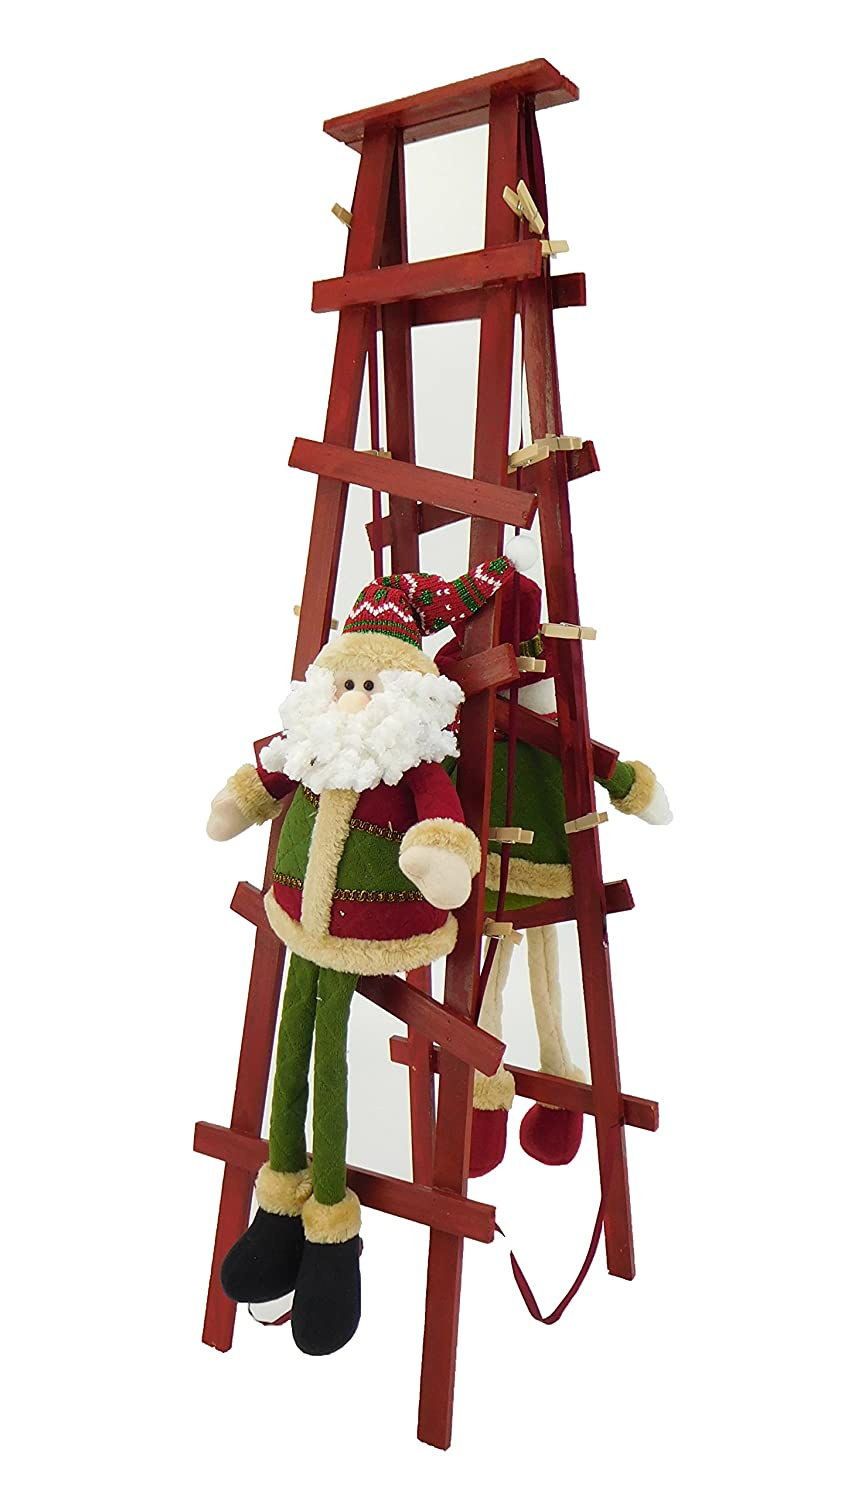 Christmas Concepts® 80cm Standing Christmas Card Holder Santa & Snowman Climbing Ladder With Wooden Pegs